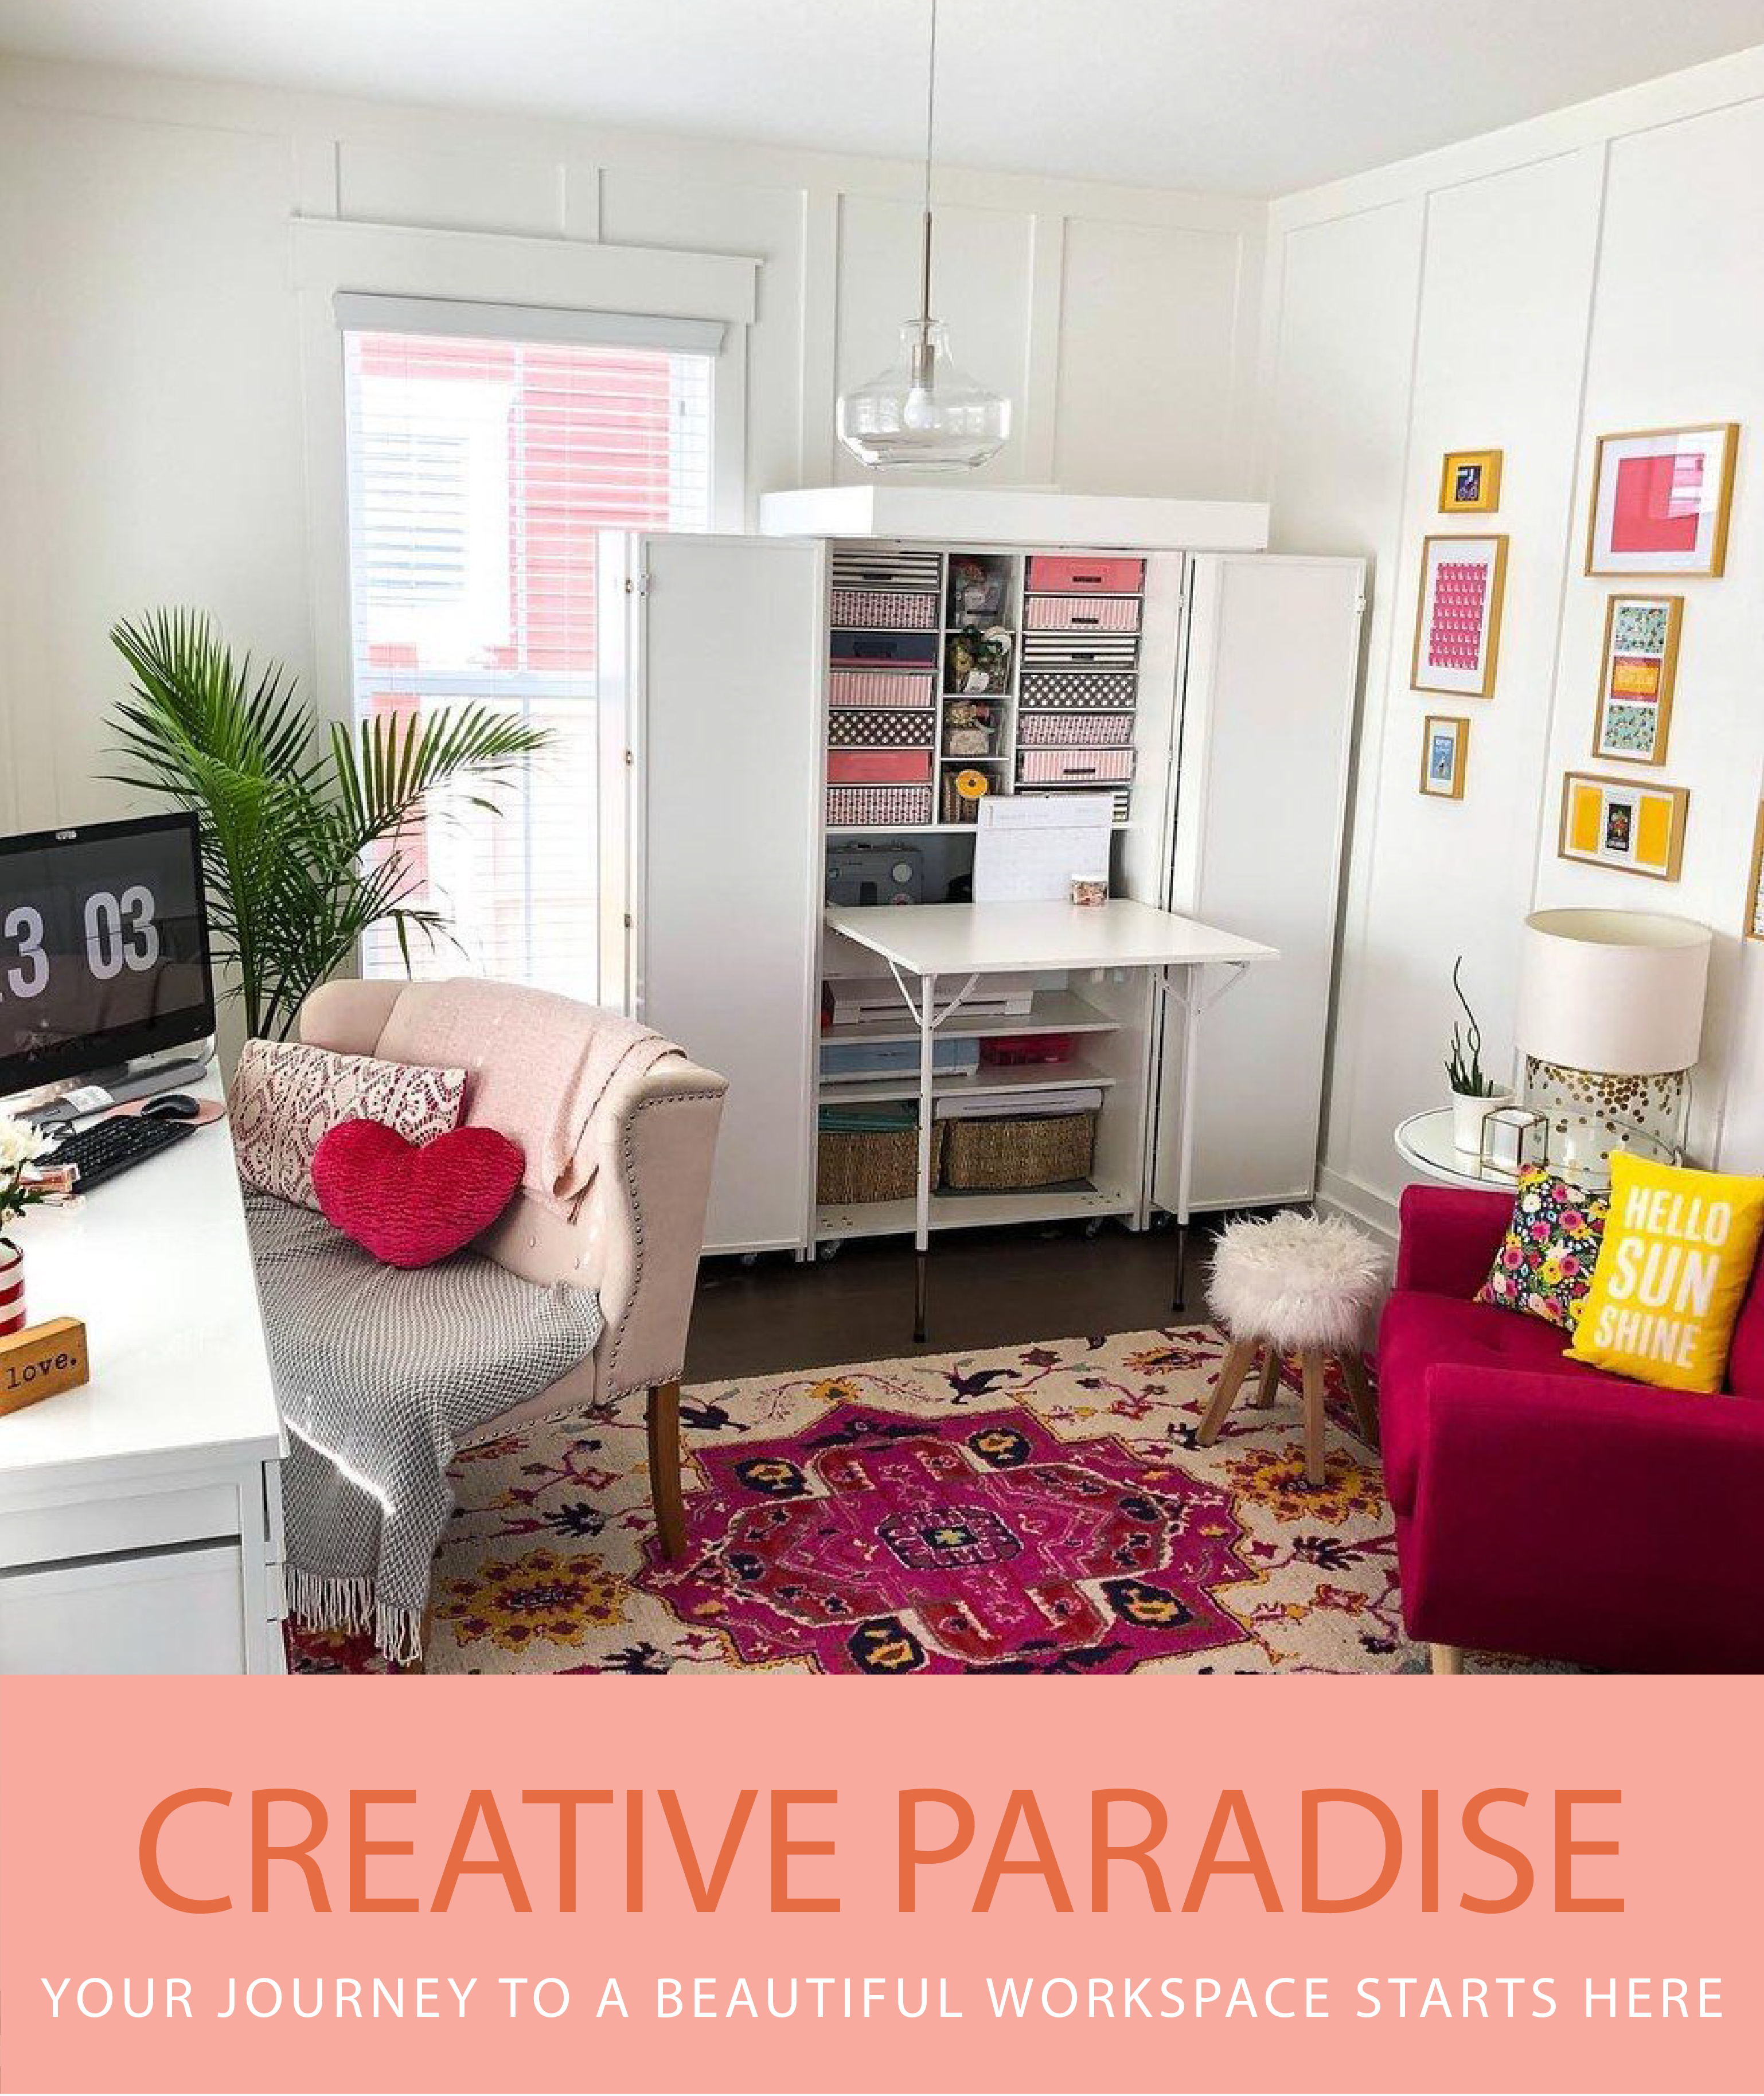 Spaces to Inspire Your Creative Journey